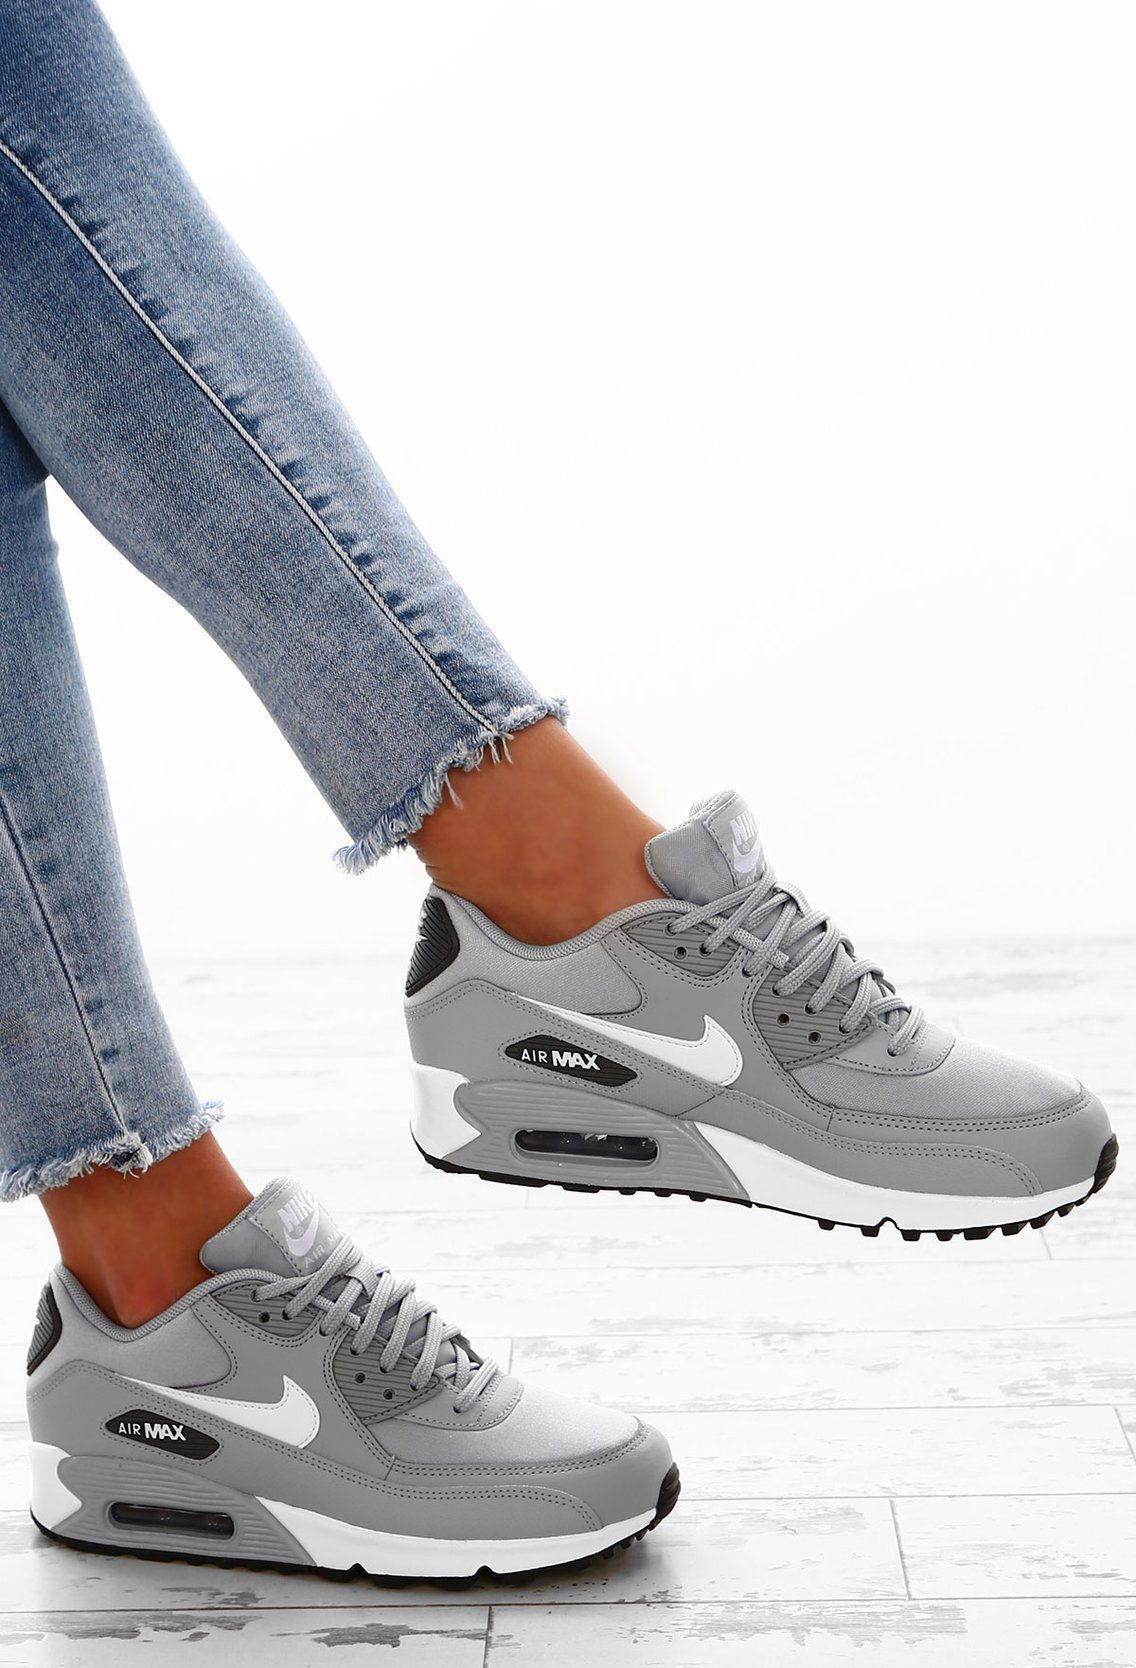 Nike Air Max 90 Grey Trainers in 2020 | Gray nike shoes ...